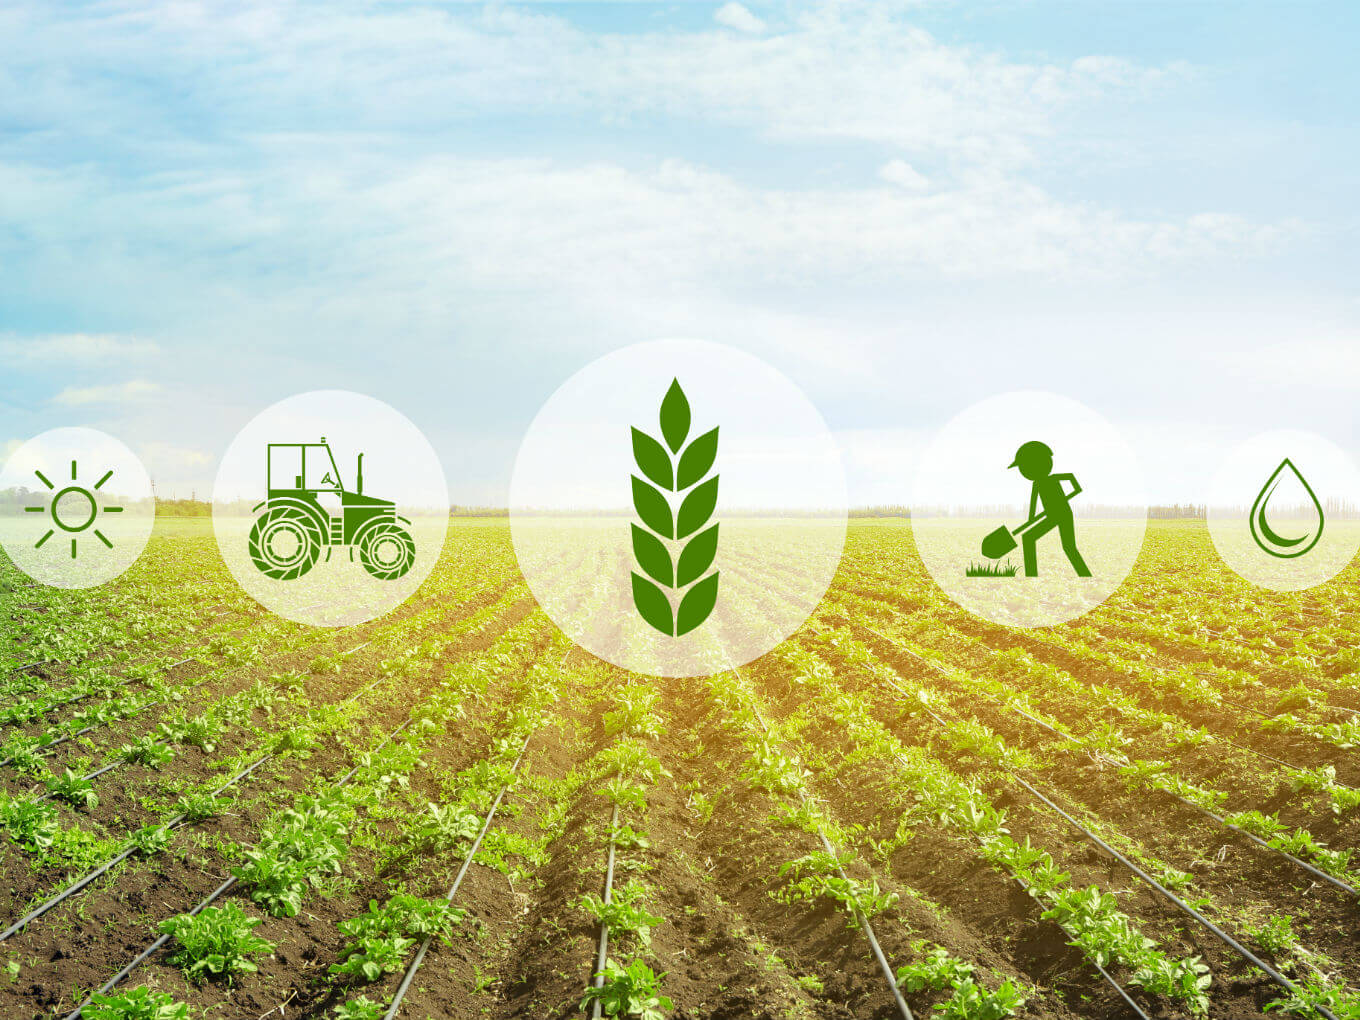 Here Are The Five Agritech Startups Joining Gastrotope's First Cohort